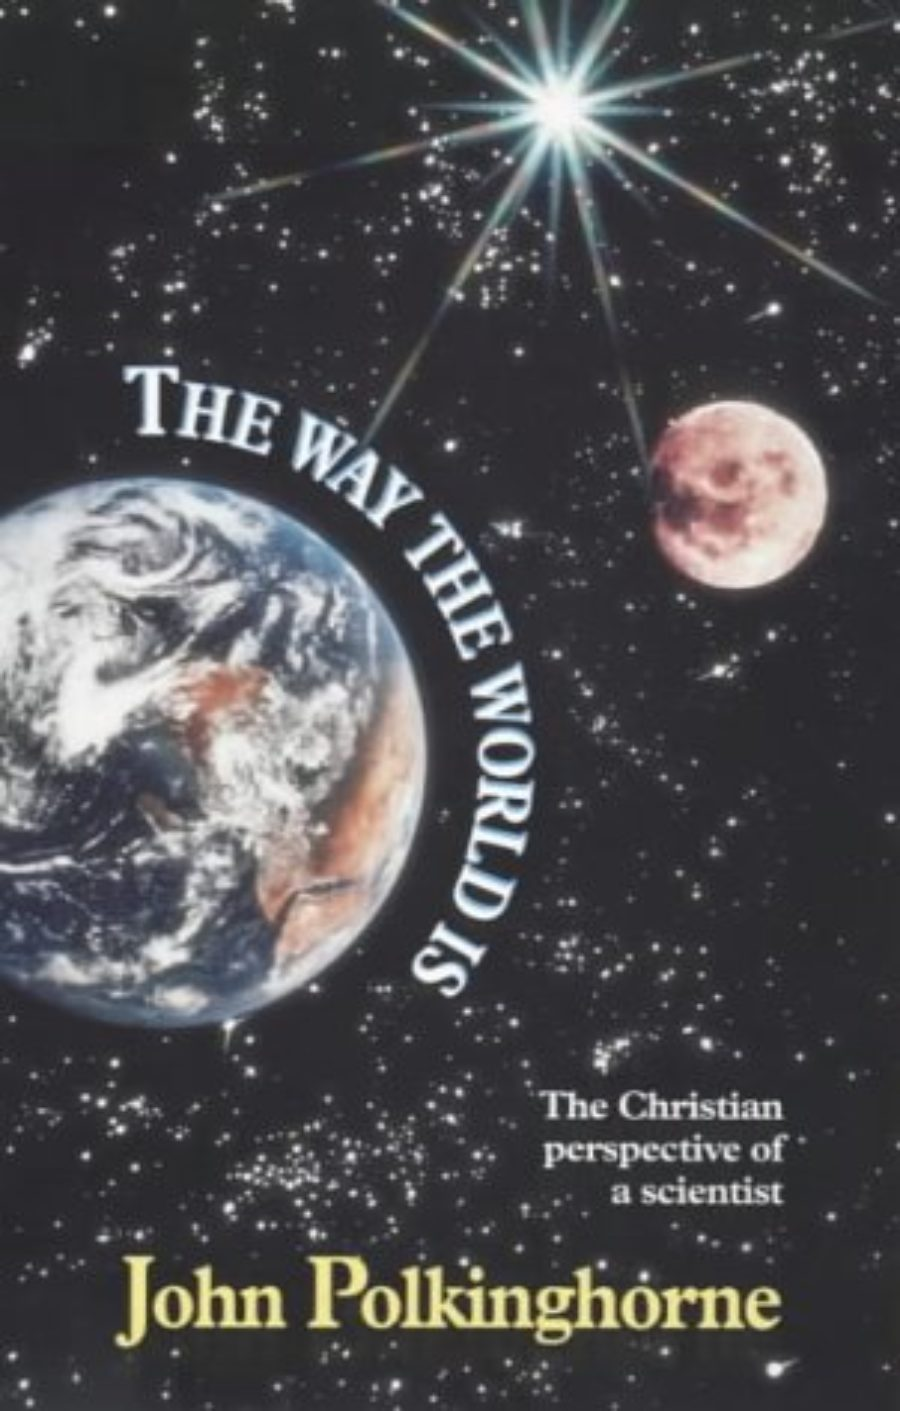 Cover of The Way The World Is : The Christian Perspective of a Scientist